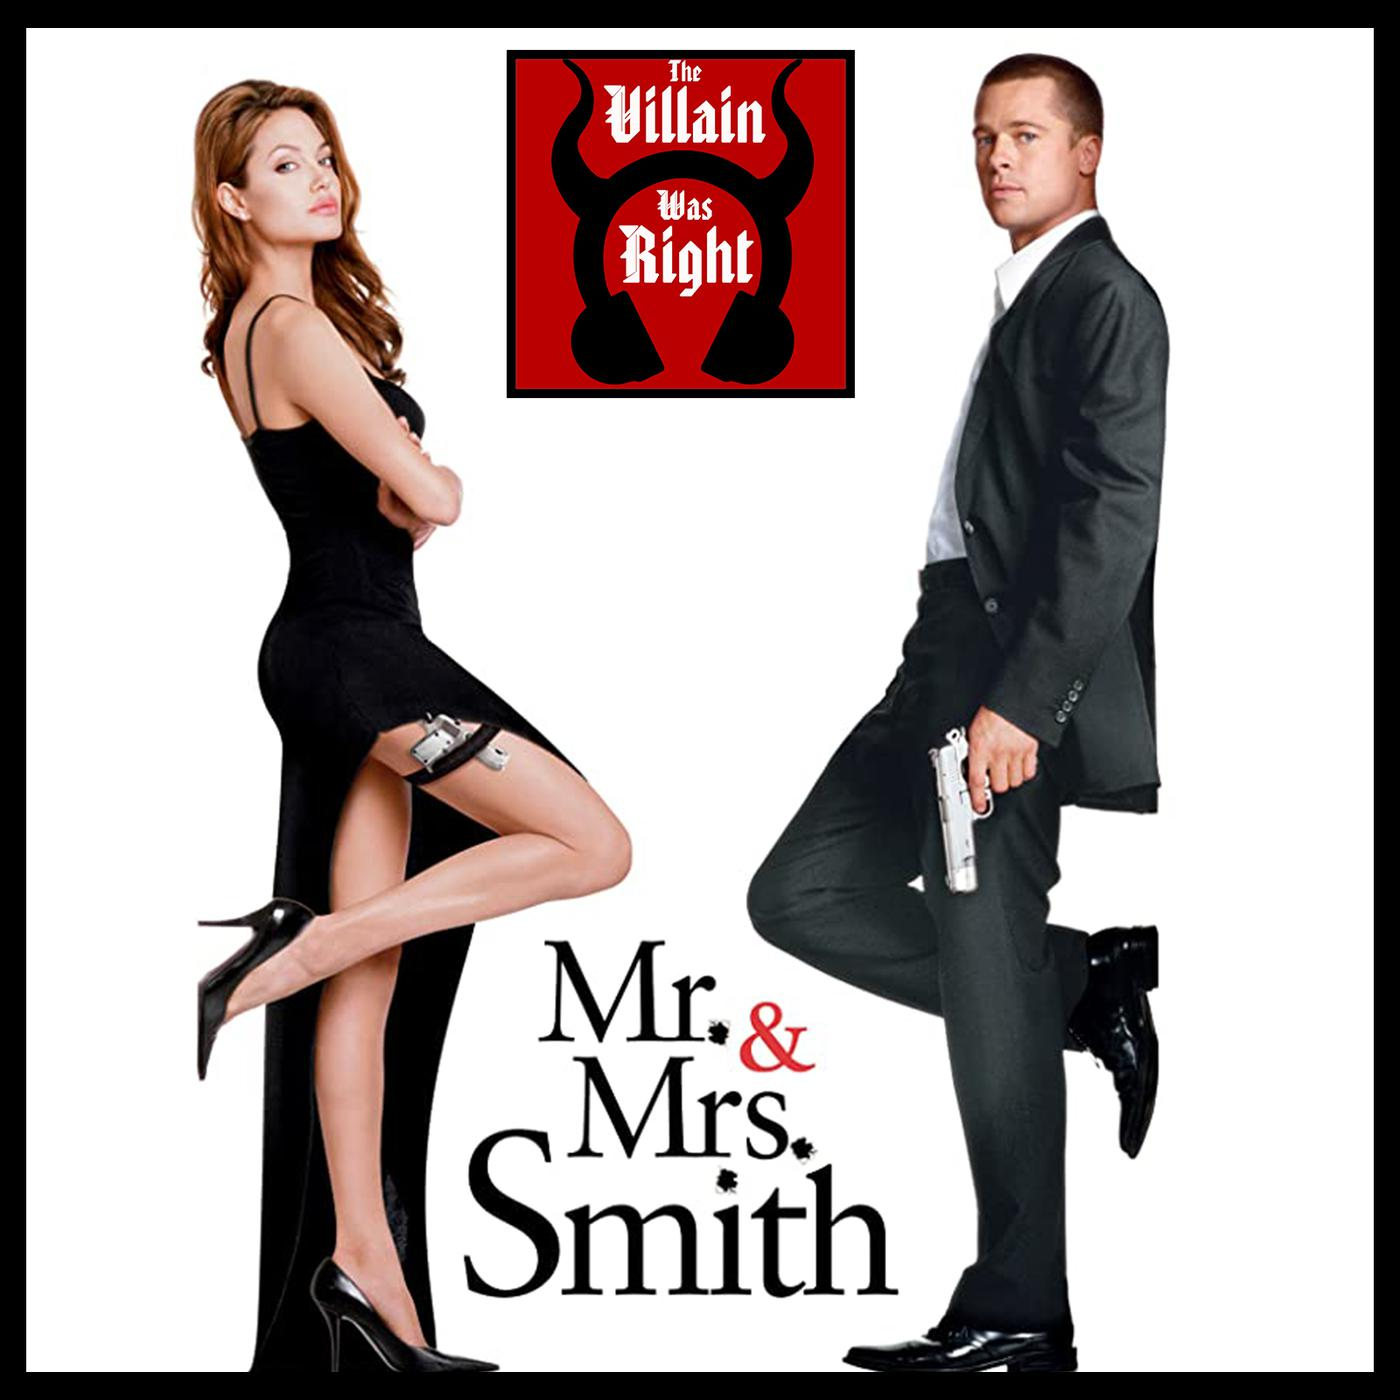 81 Mr And Mrs Smith 2005 The Villain Was Right Podcast Listen Notes